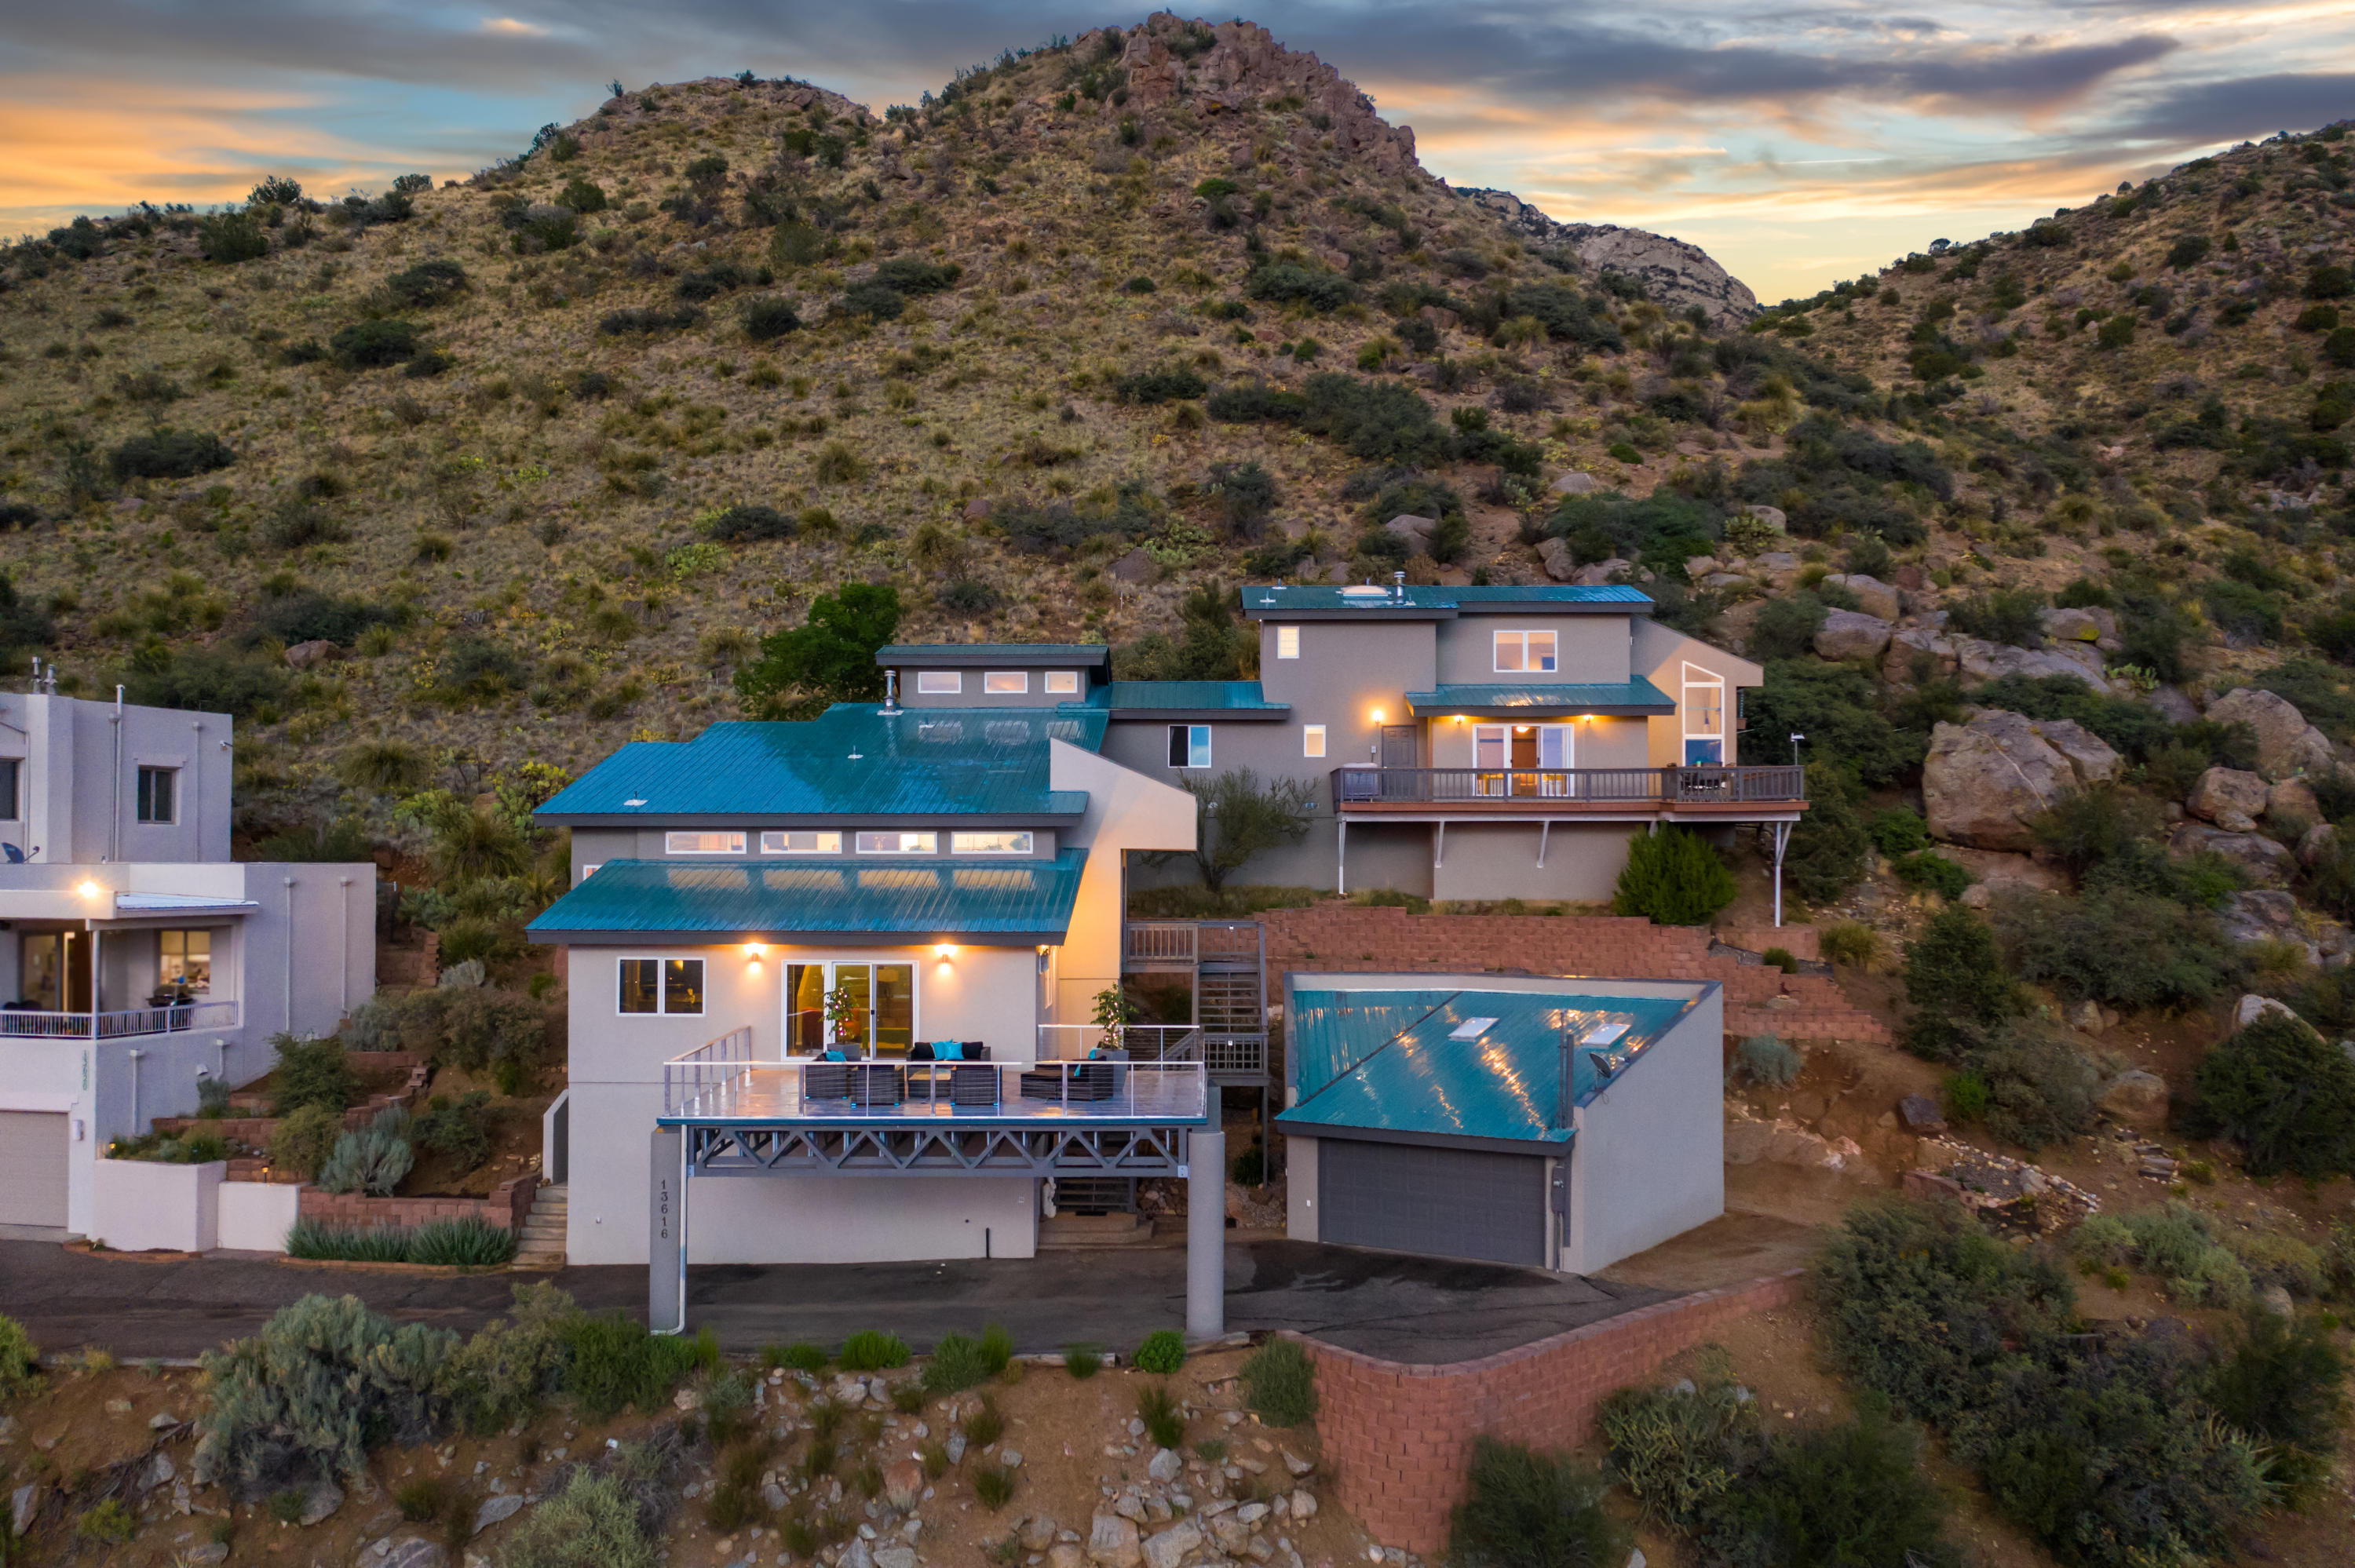 13616 DEER TRAIL Trail NE Property Photo - Albuquerque, NM real estate listing